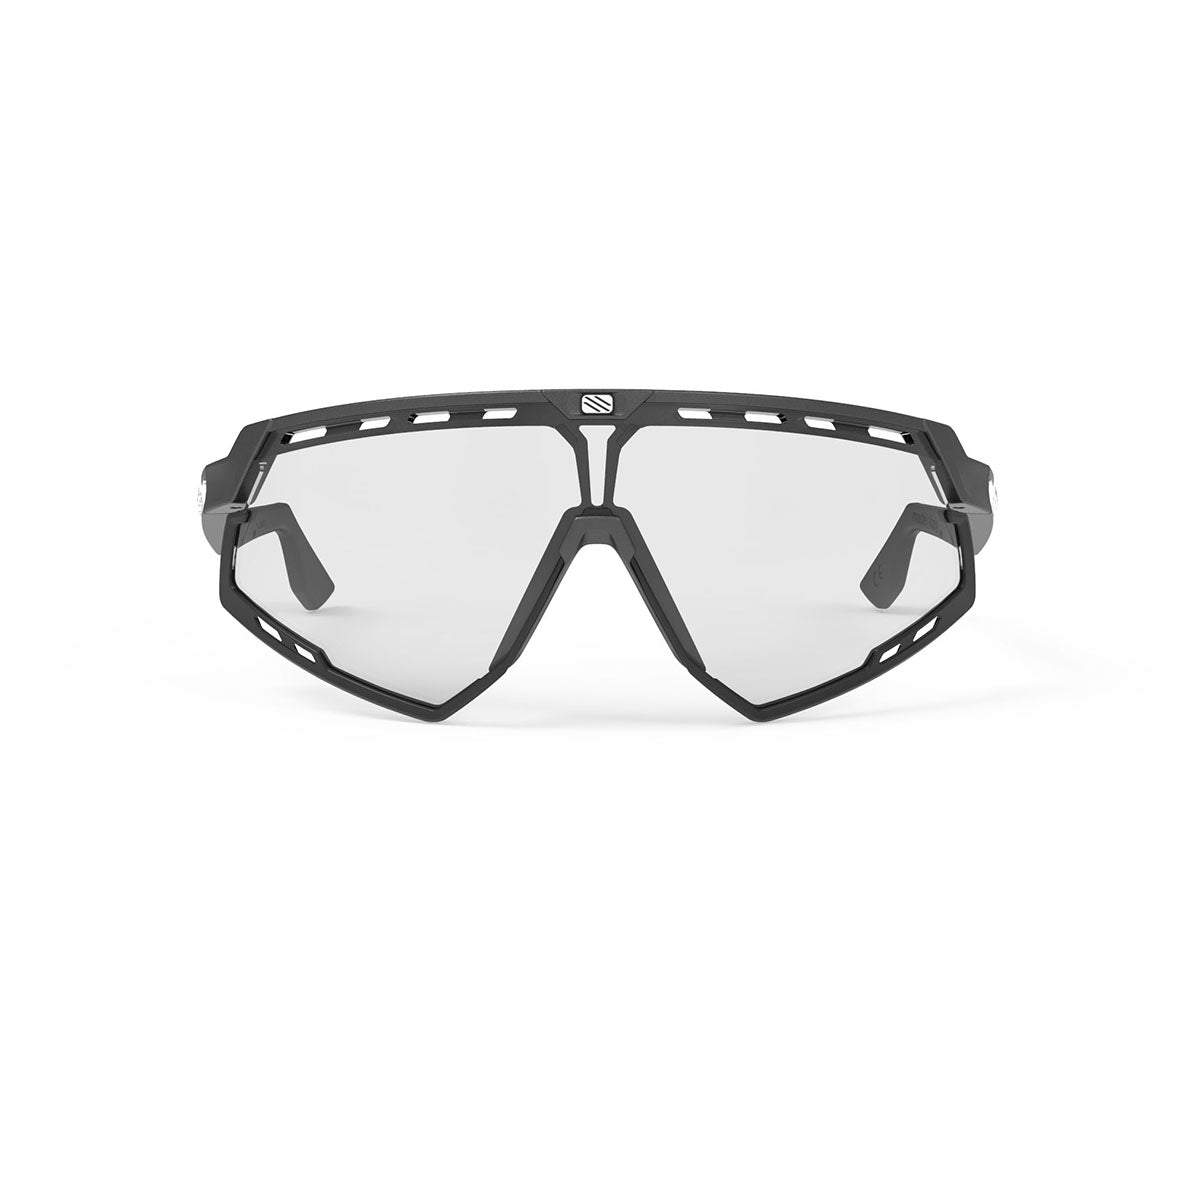 Rudy Project - Defender - frame color: Pyombo Matte - lens color: ImpactX-2 Photochromic Clear to Black - Bumper Color: Black - photo angle: Front View Variant Hover Image